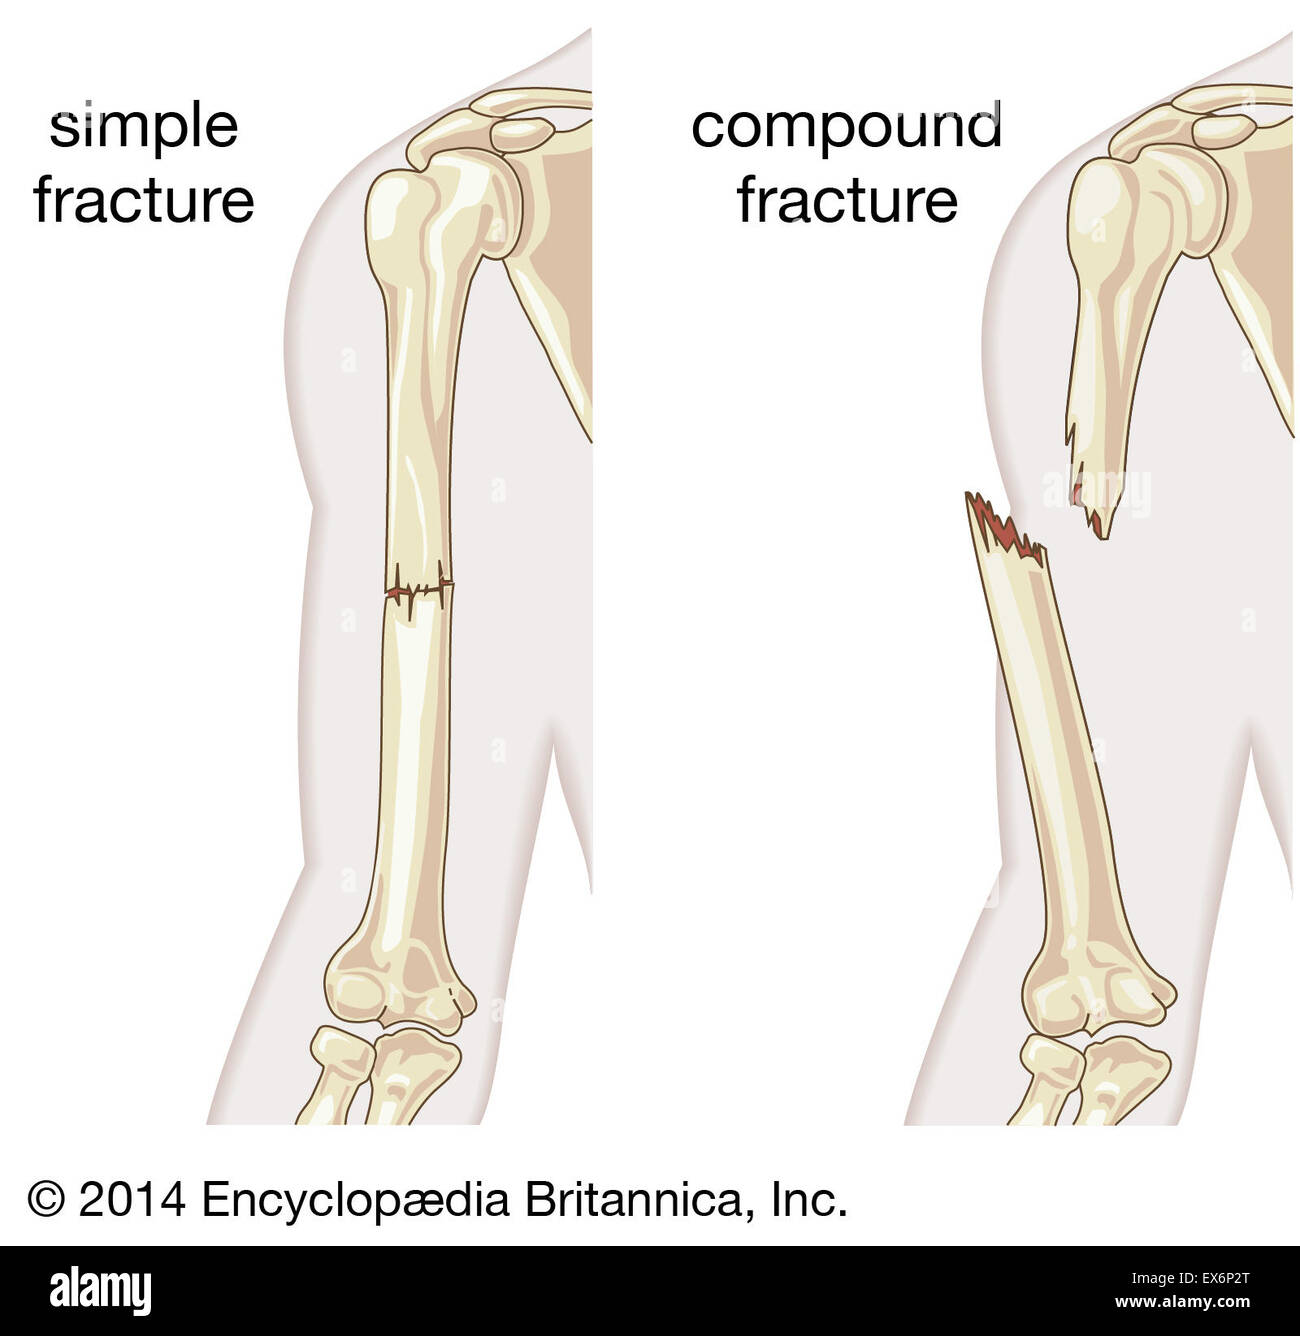 simple and compound fracture - stock image